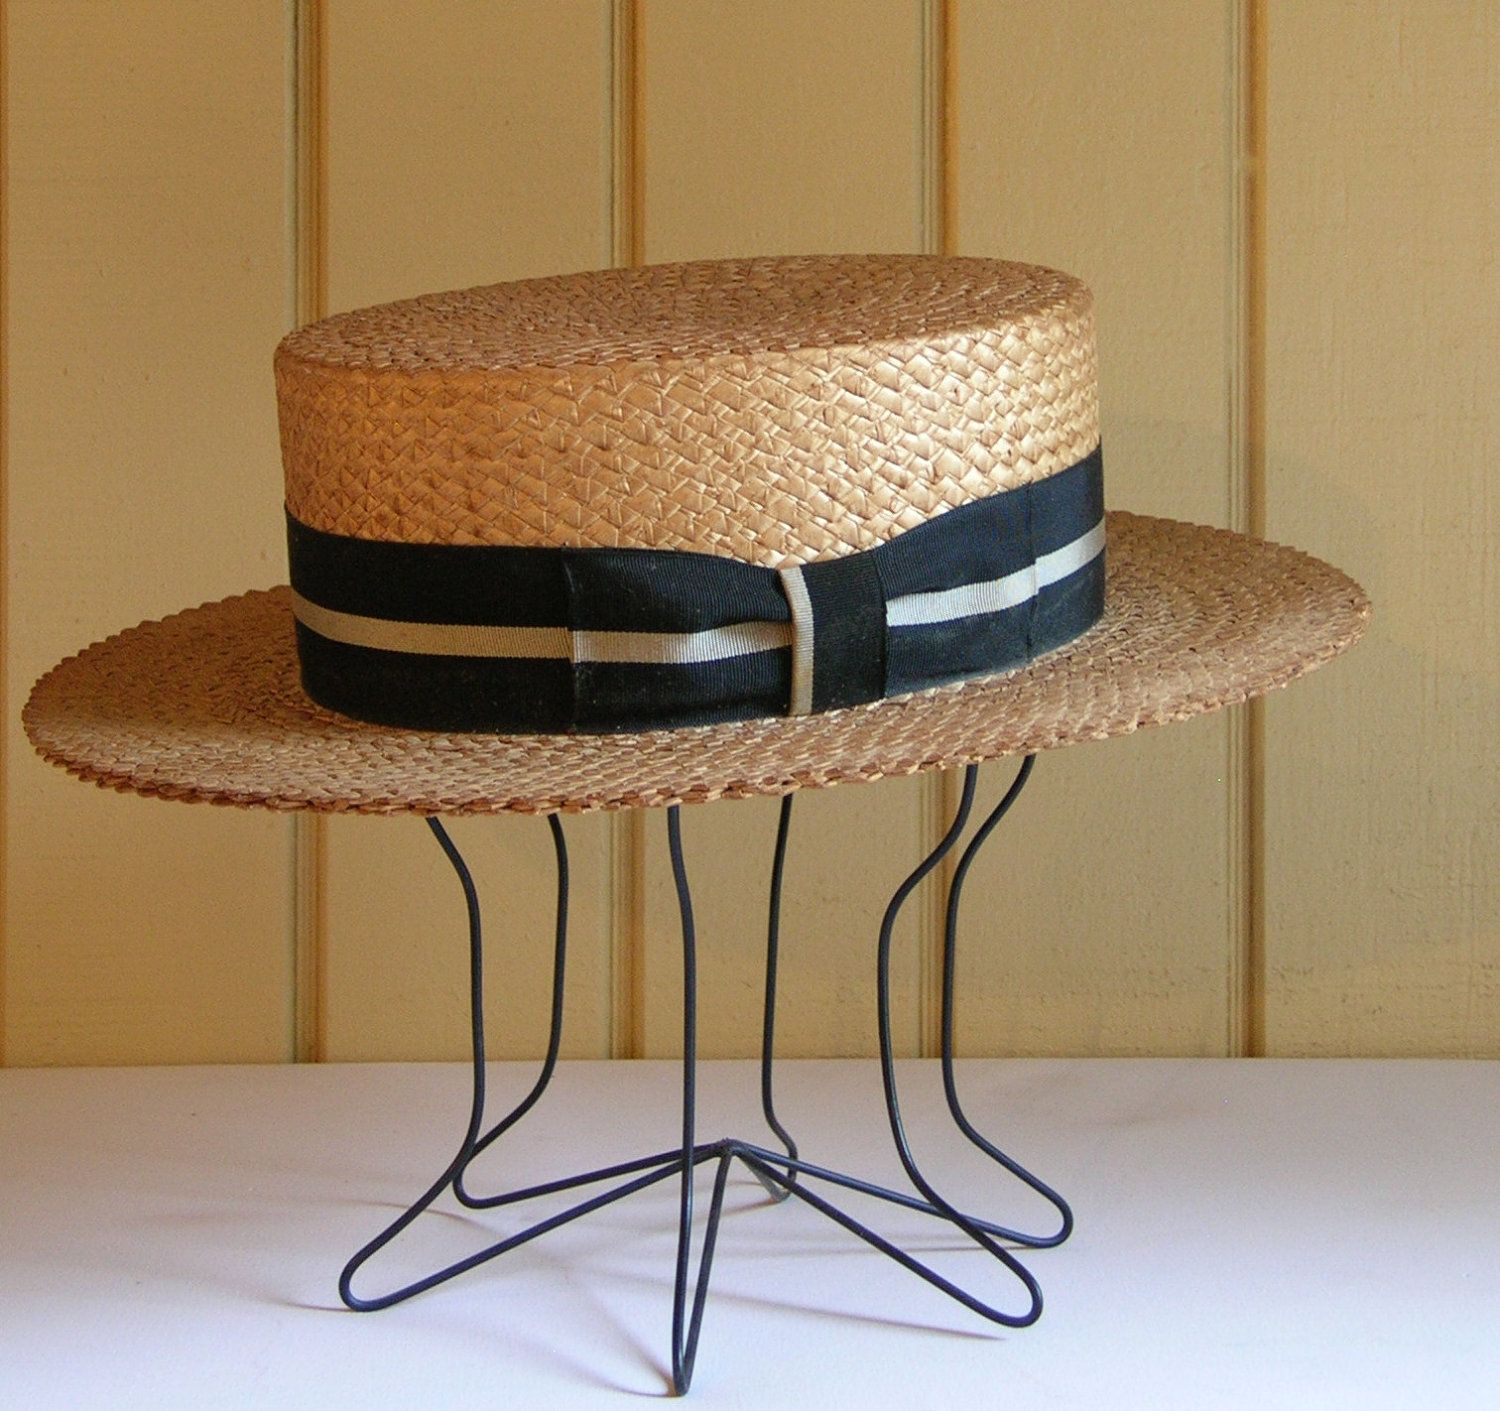 1671de88a605a Vintage Early 1900 s Men s Boater Straw Boater Hat Mens